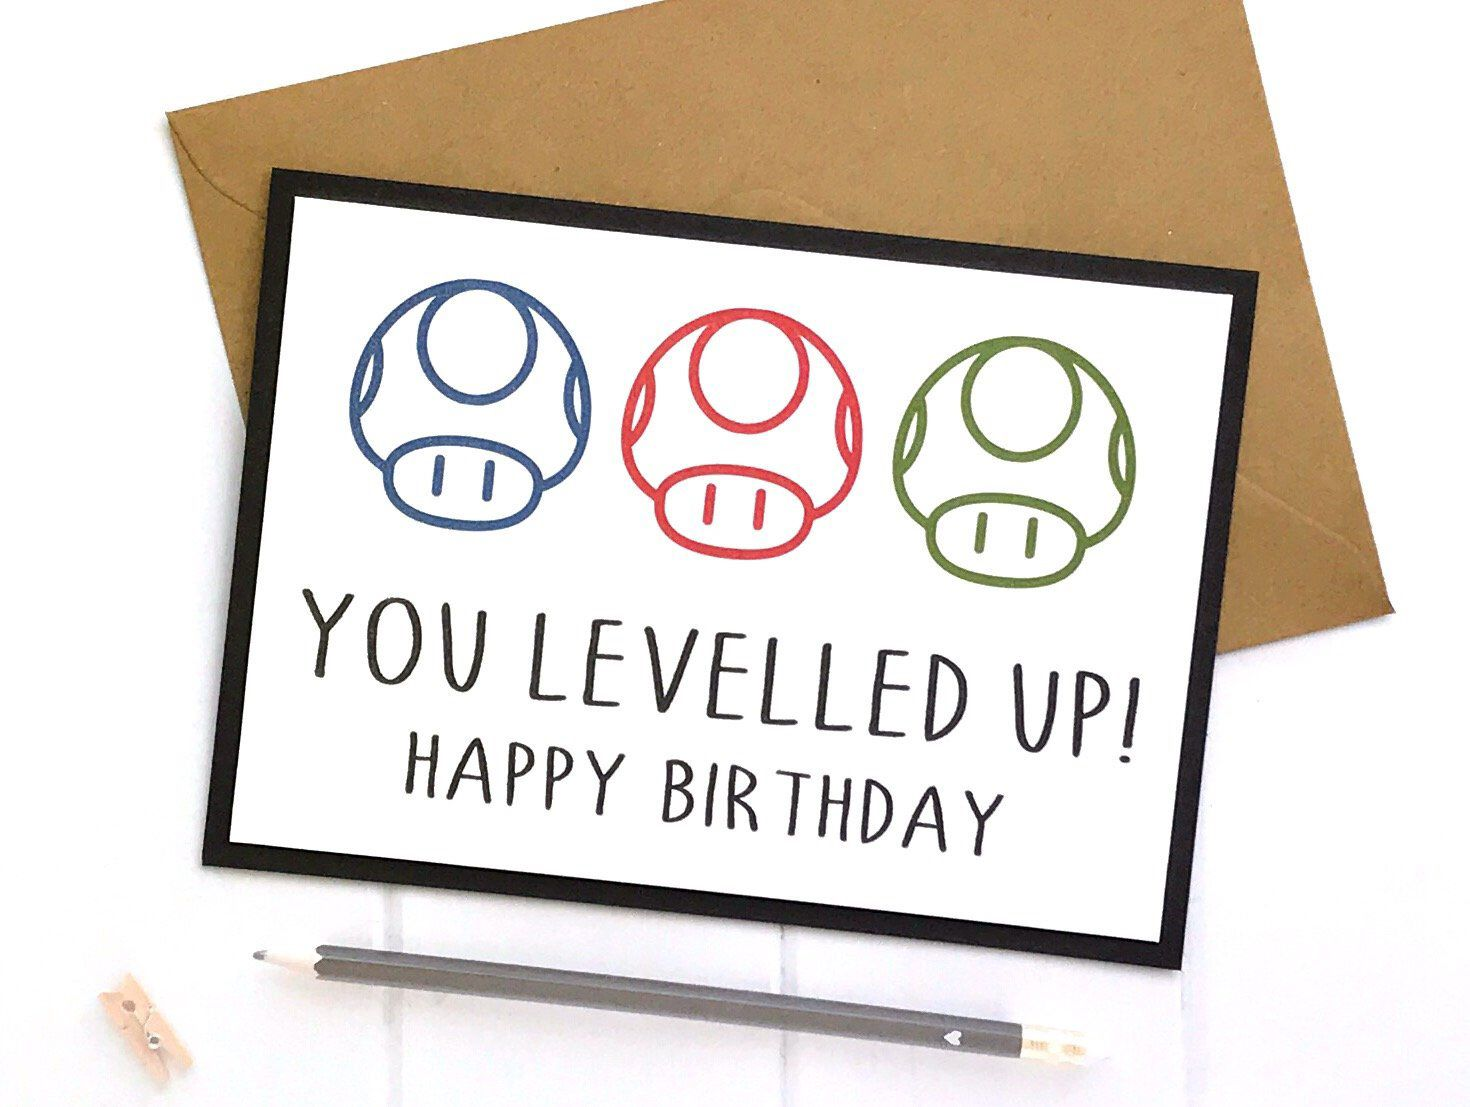 Excited To Share This Item From My Etsy Shop Gamer Cards Mario Birthday Card Mario Card Mari Bday Gifts For Him Diy Gifts For Him Thoughtful Gifts For Him